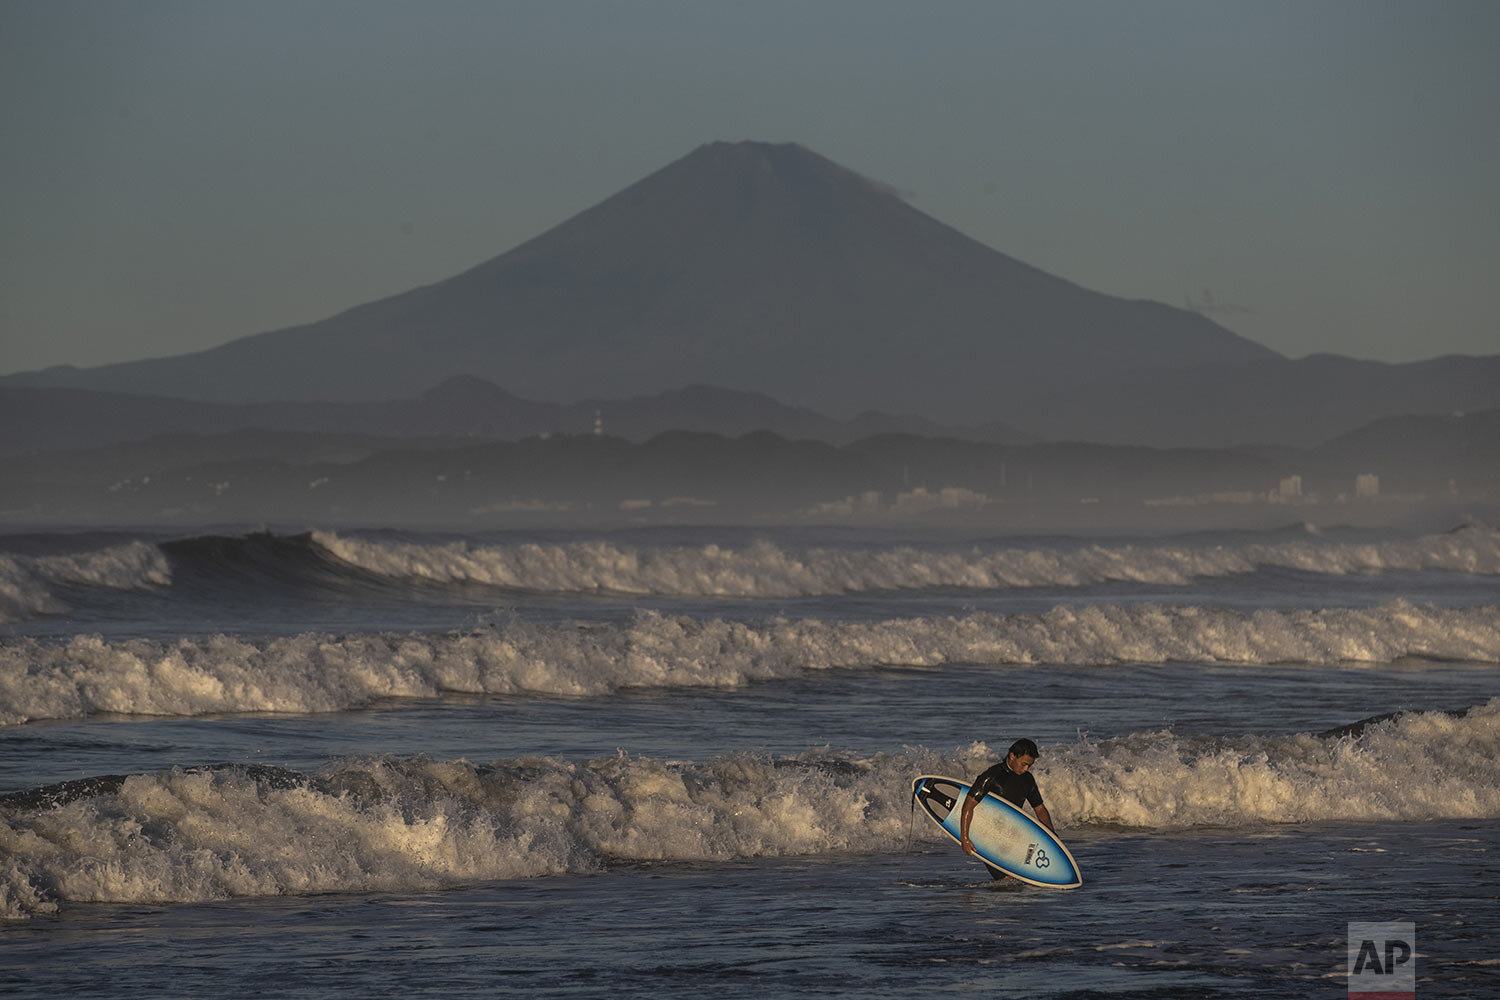 A surfer walks out of the water as Mount Fuji is visible in the distance after Typhoon Hagibis passed through the area, Sunday, Oct. 13, 2019, in Fujisawa, west of Tokyo. (AP Photo/Jae C. Hong)